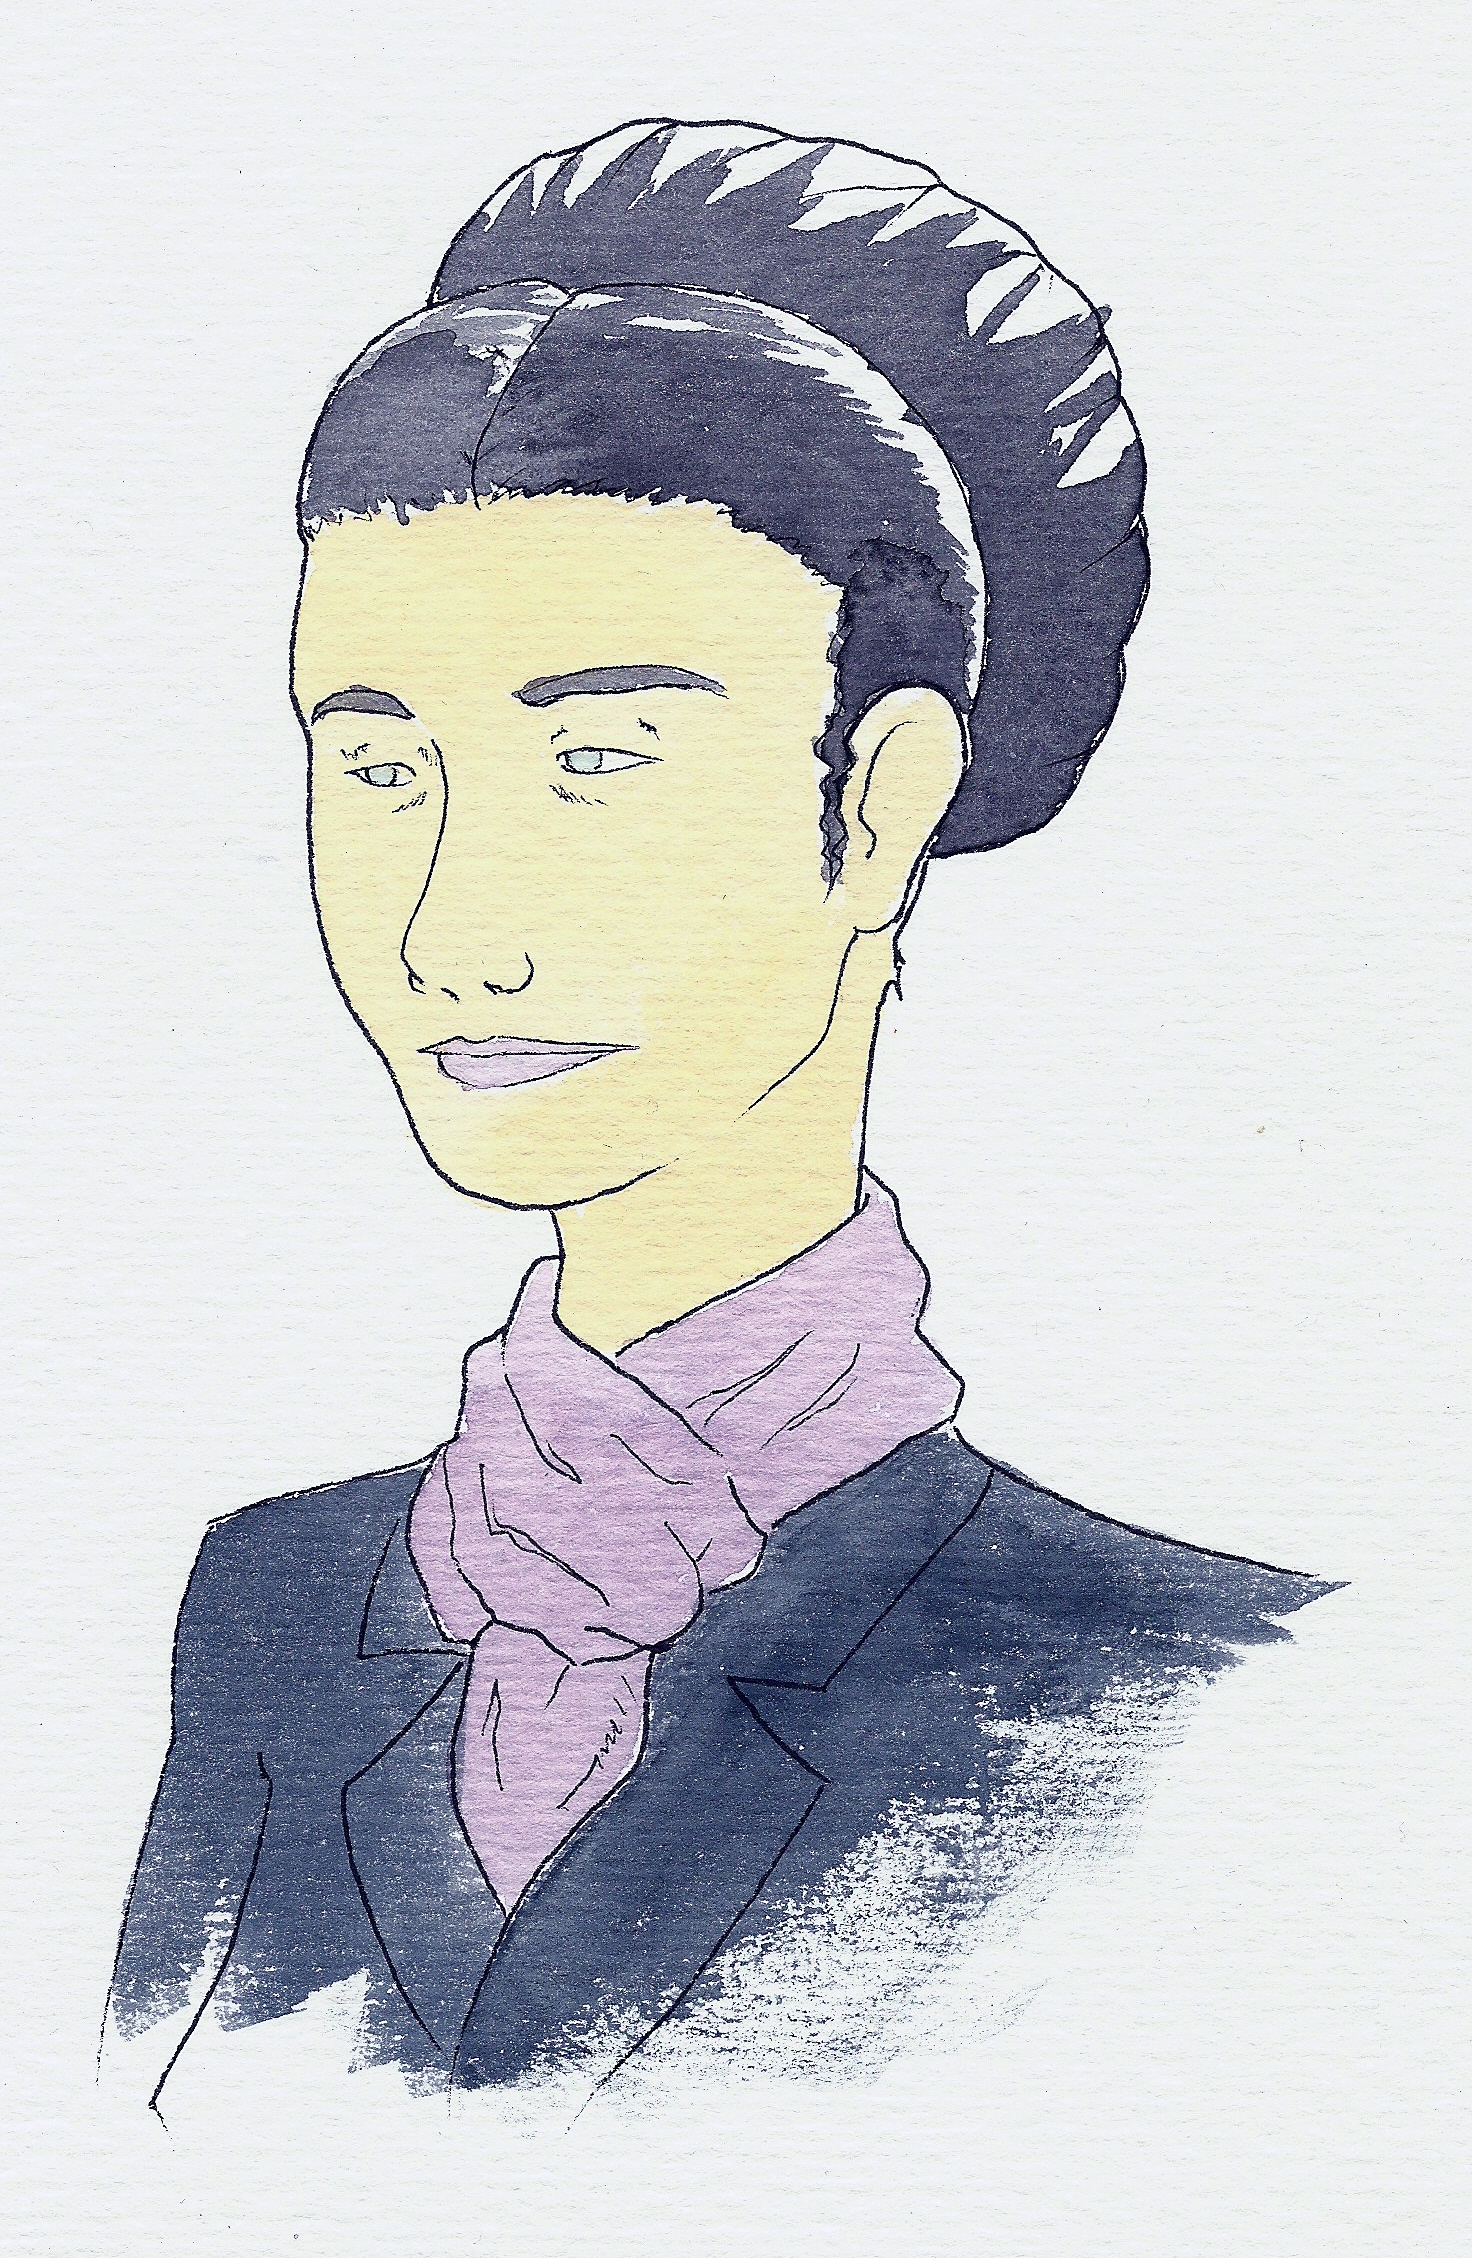 Simone de Beauvoir (1908-1986) french philosopher. Ink and watercolor This image was provided to Wikimedia Commons as a contribution from an Art&Design School thanks of a collaboration between Llotja and Amical Wikimedia.